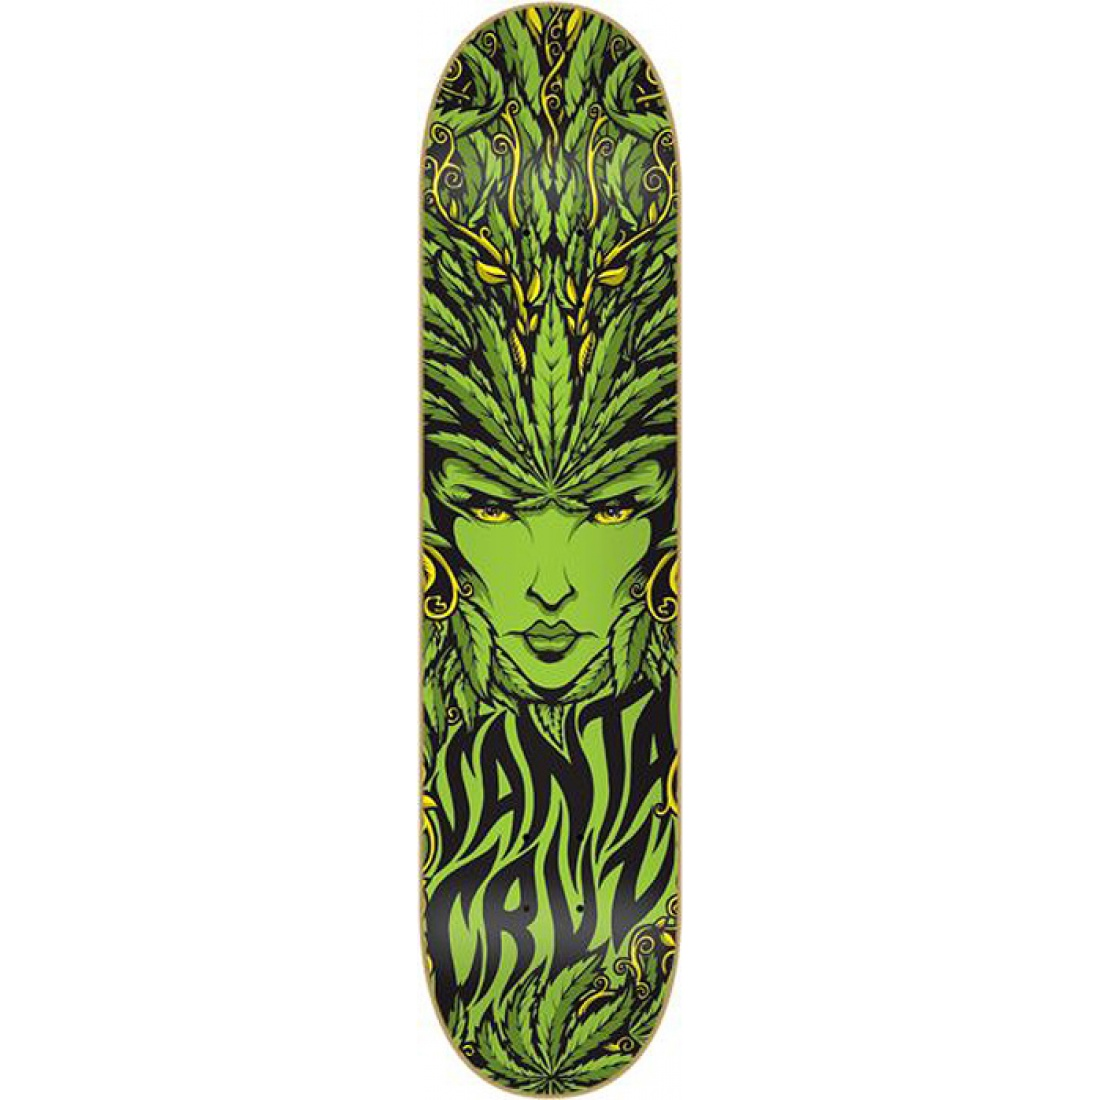 SCZ-Weed Goddess MD Powerply 8.1 Deck